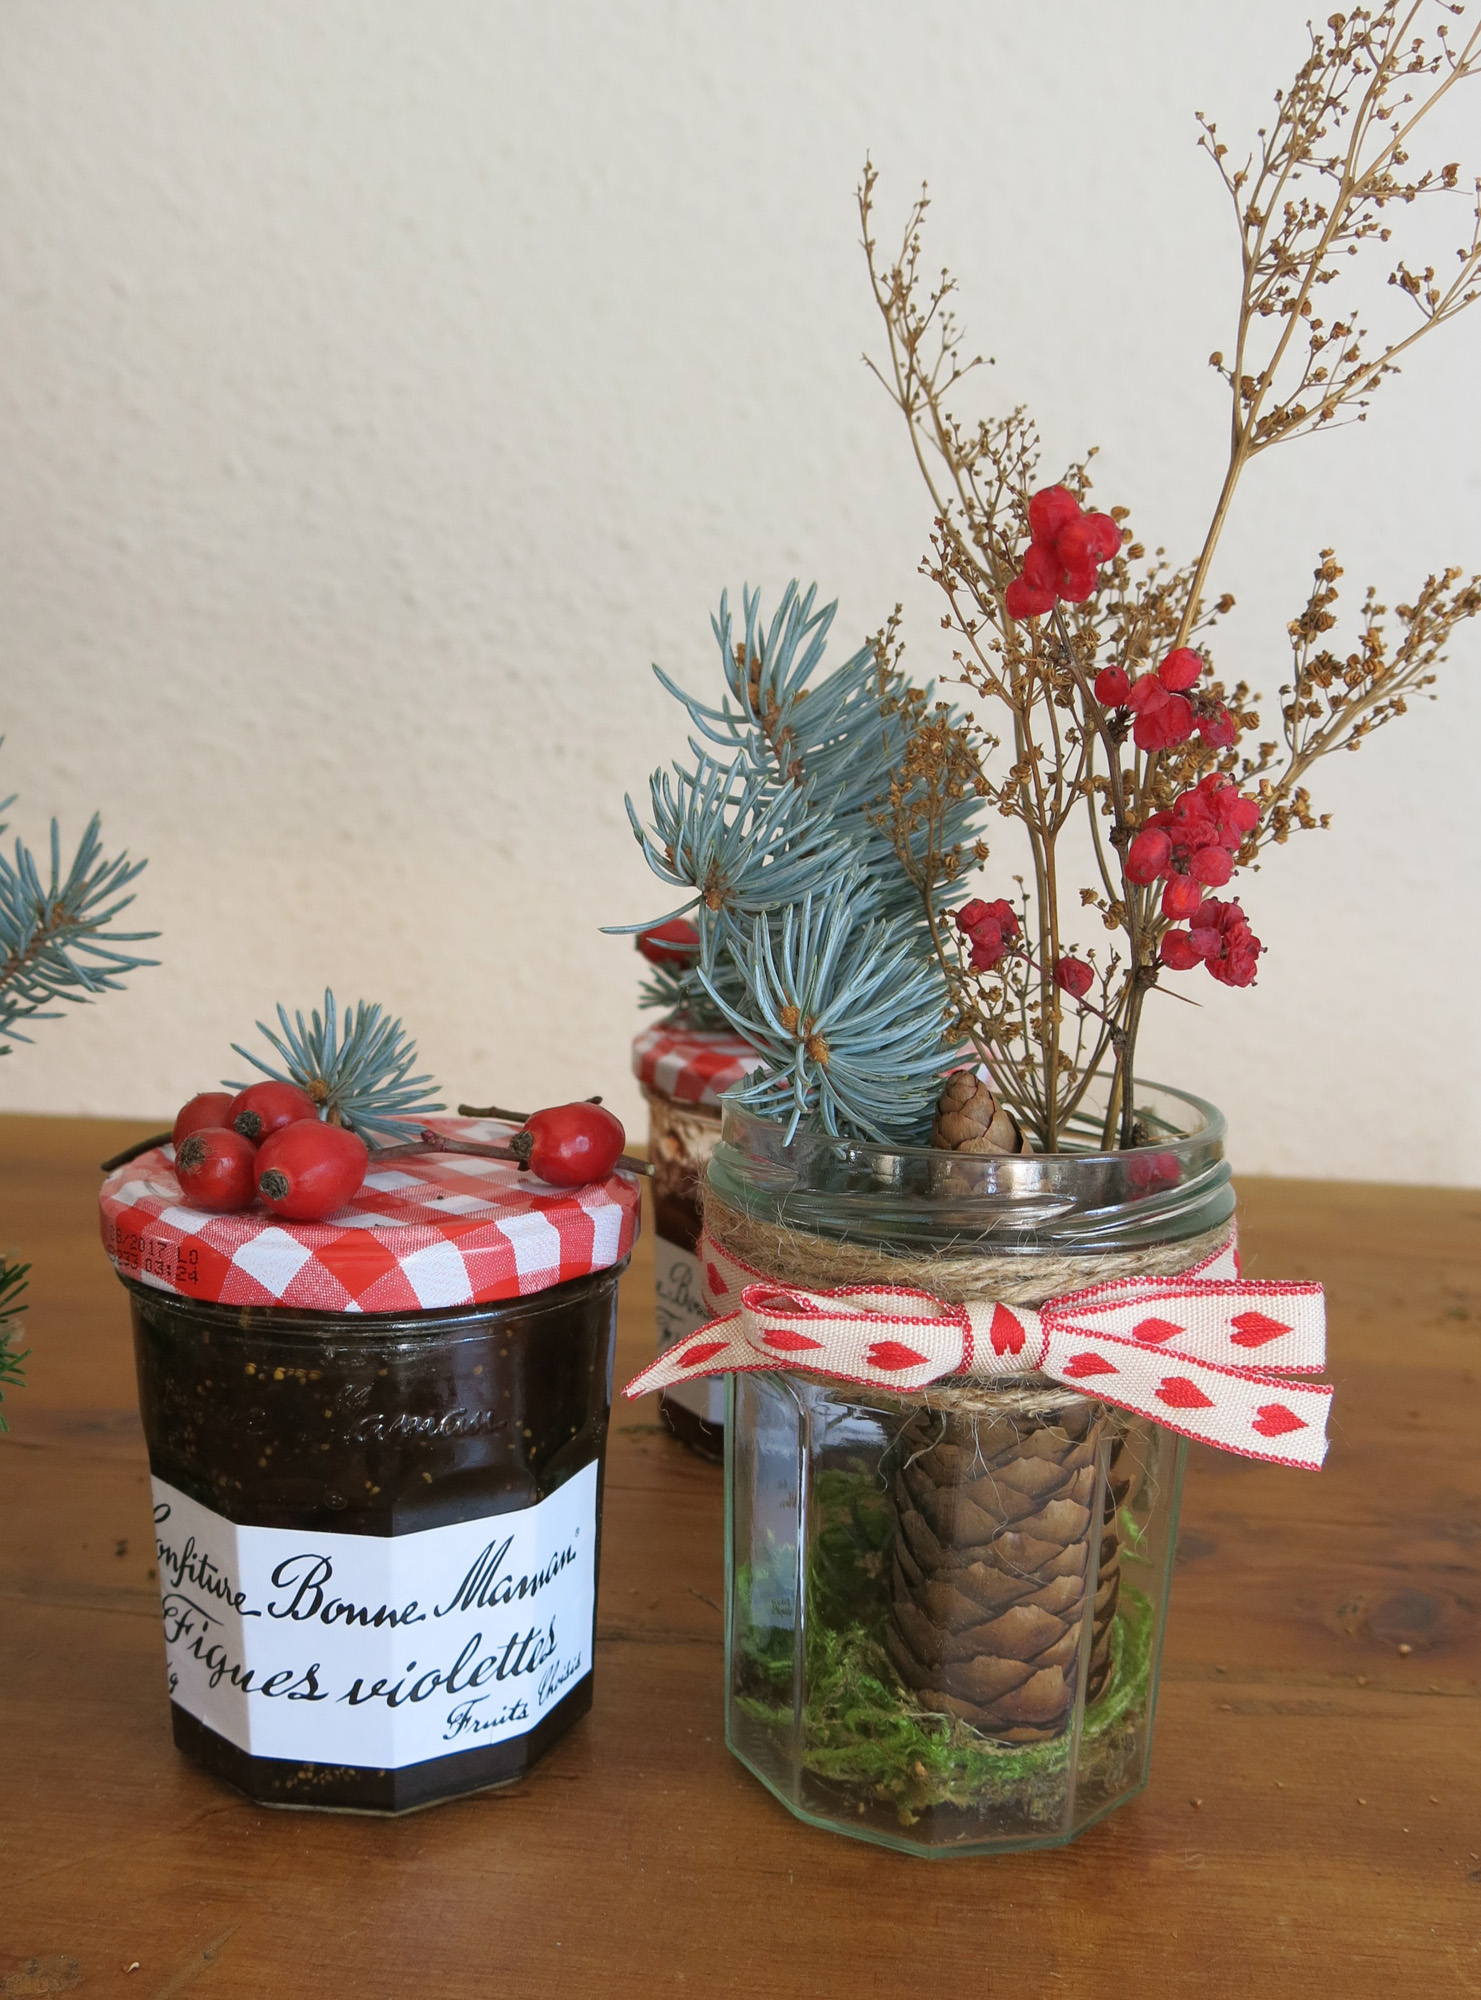 Diy de no l d co de table en pots bonne maman on sunday mornings - Pots de confiture vides bonne maman ...